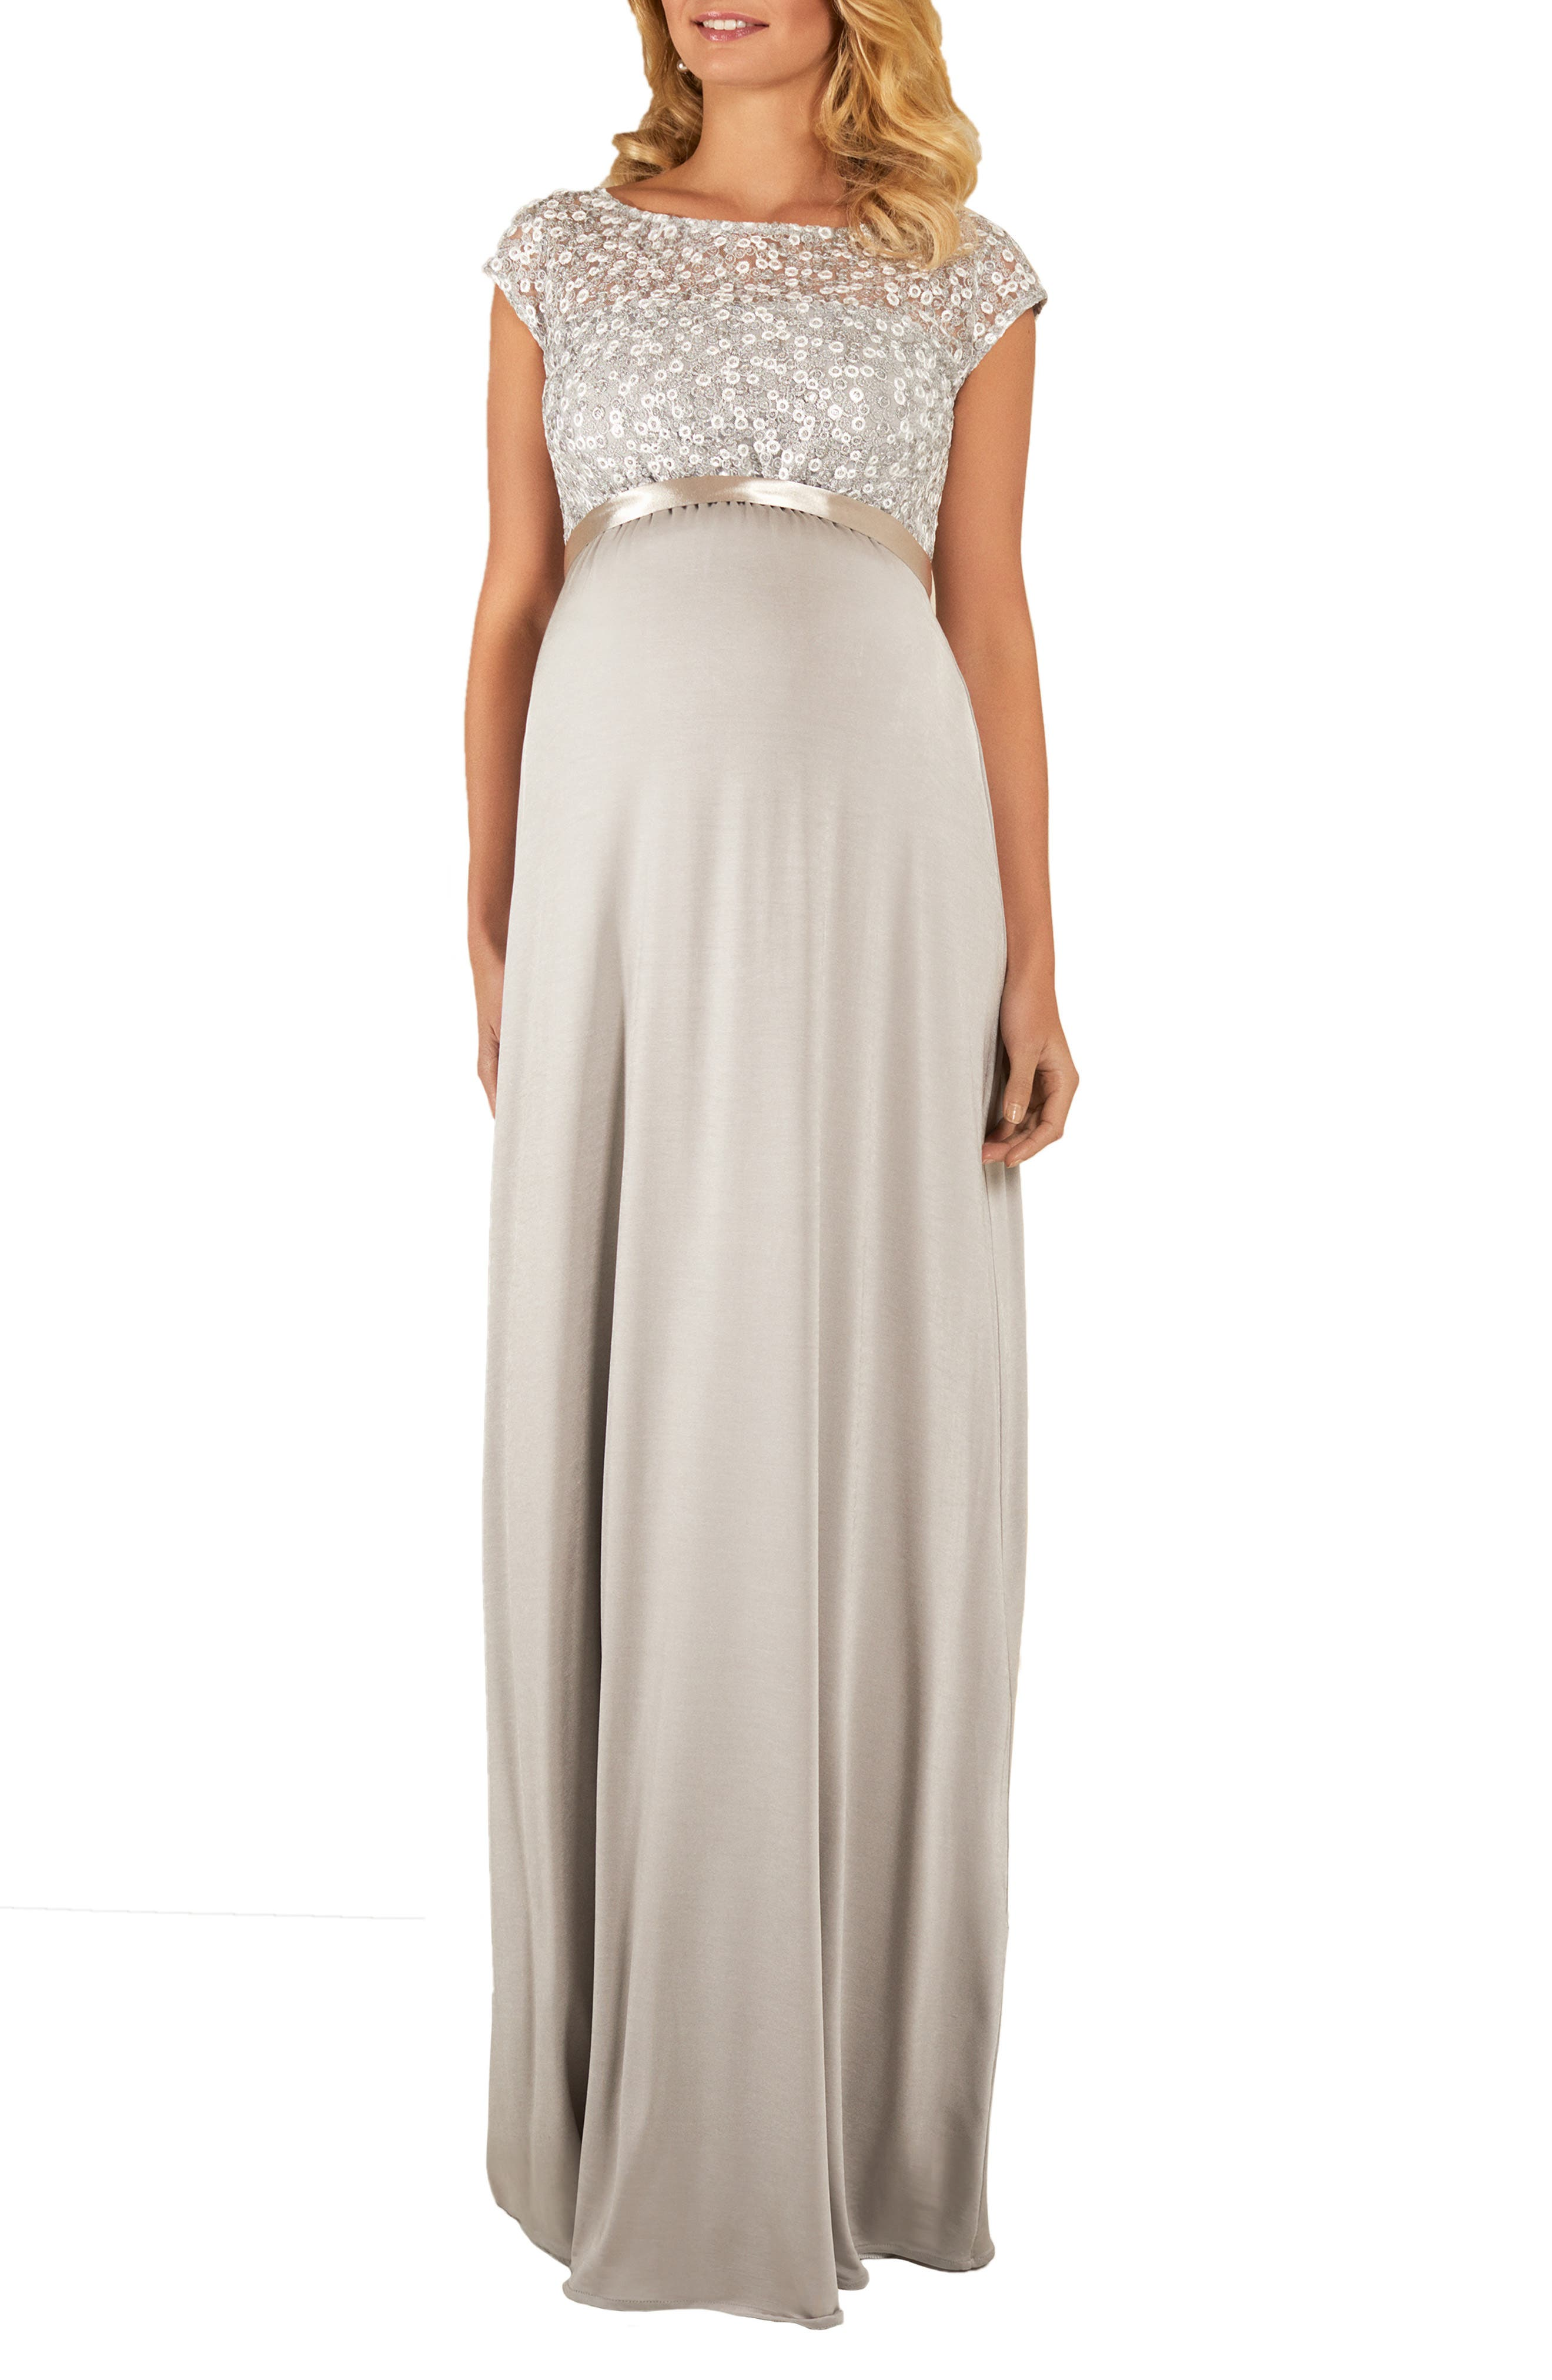 Maternity Mia Cap-Sleeve Gown With Sequin Bodice & Full-Length Skirt in Silver